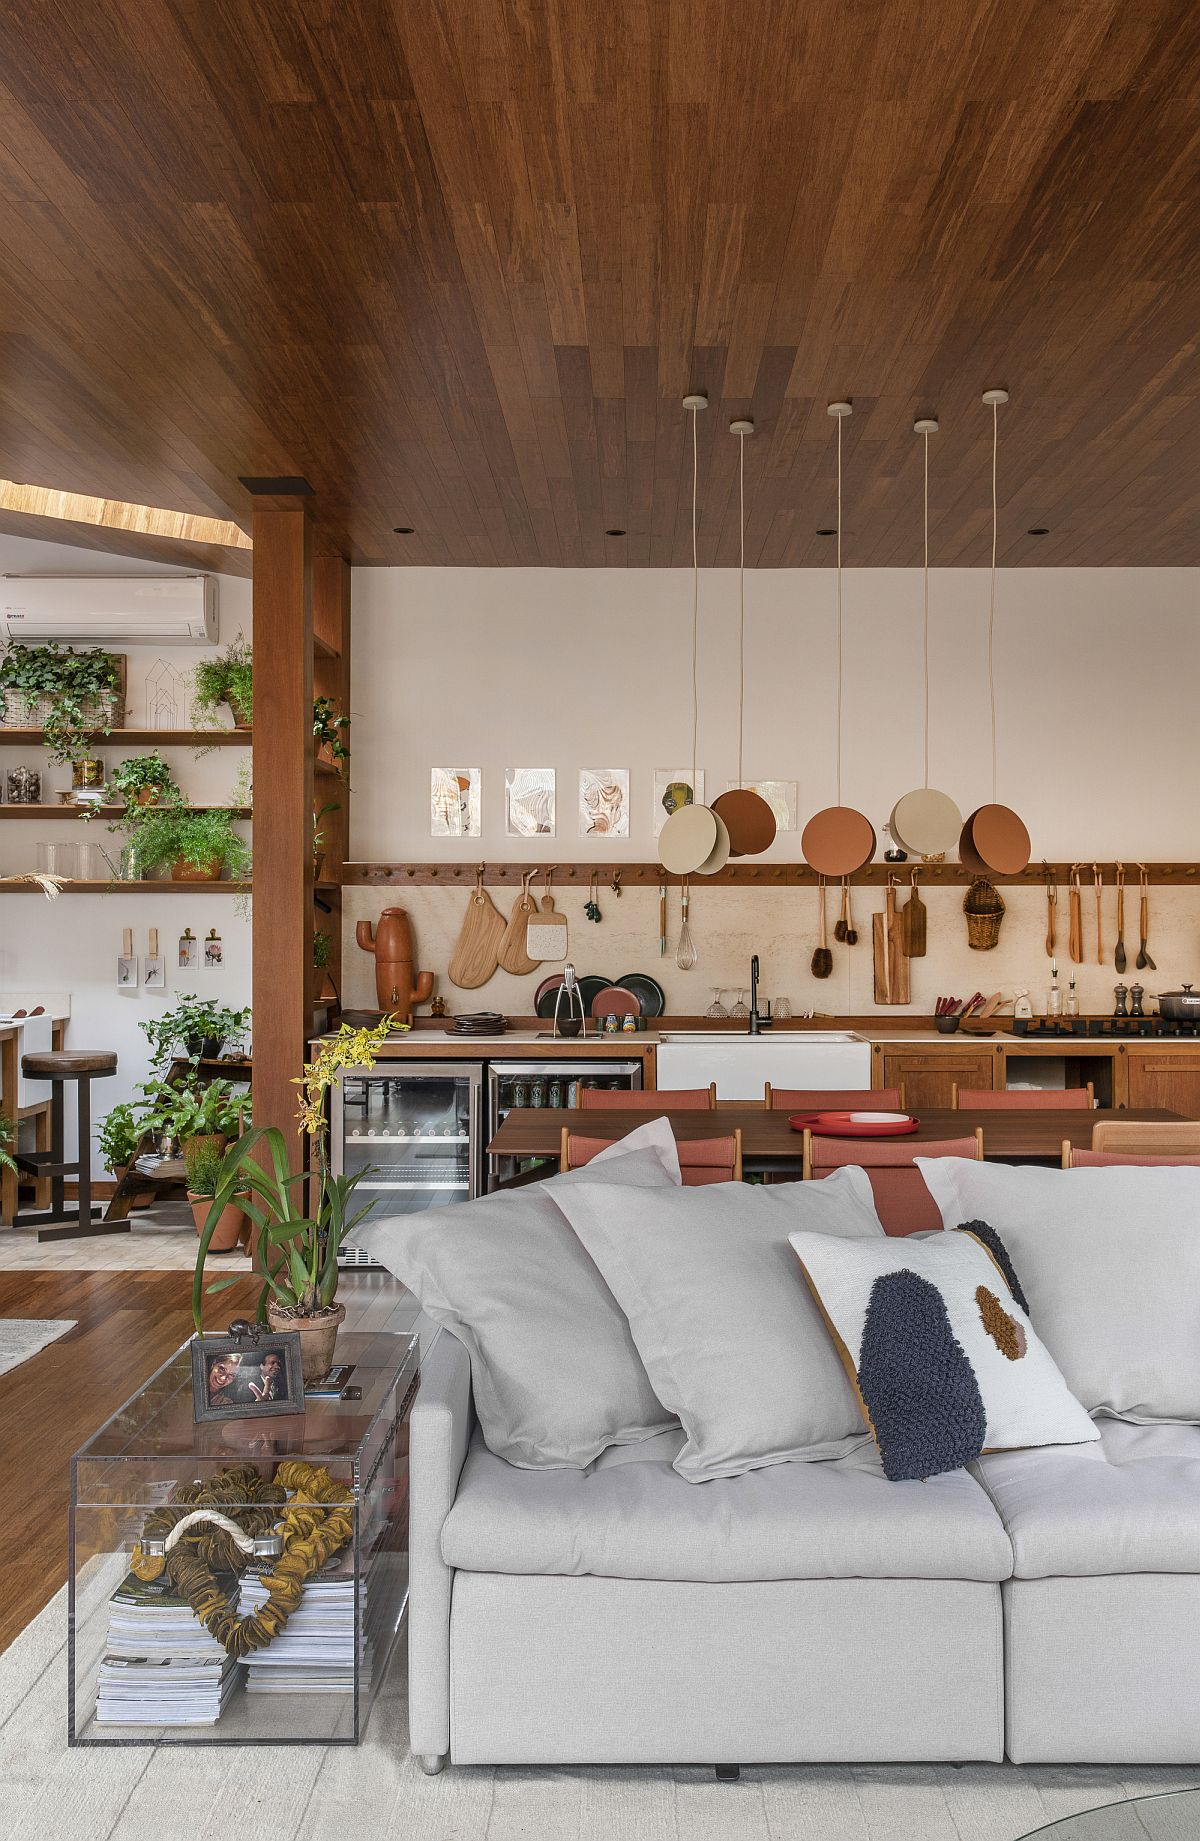 Kitchen-of-the-family-room-in-the-backdrop-uses-hooks-instead-of-usual-floating-shelves-97394